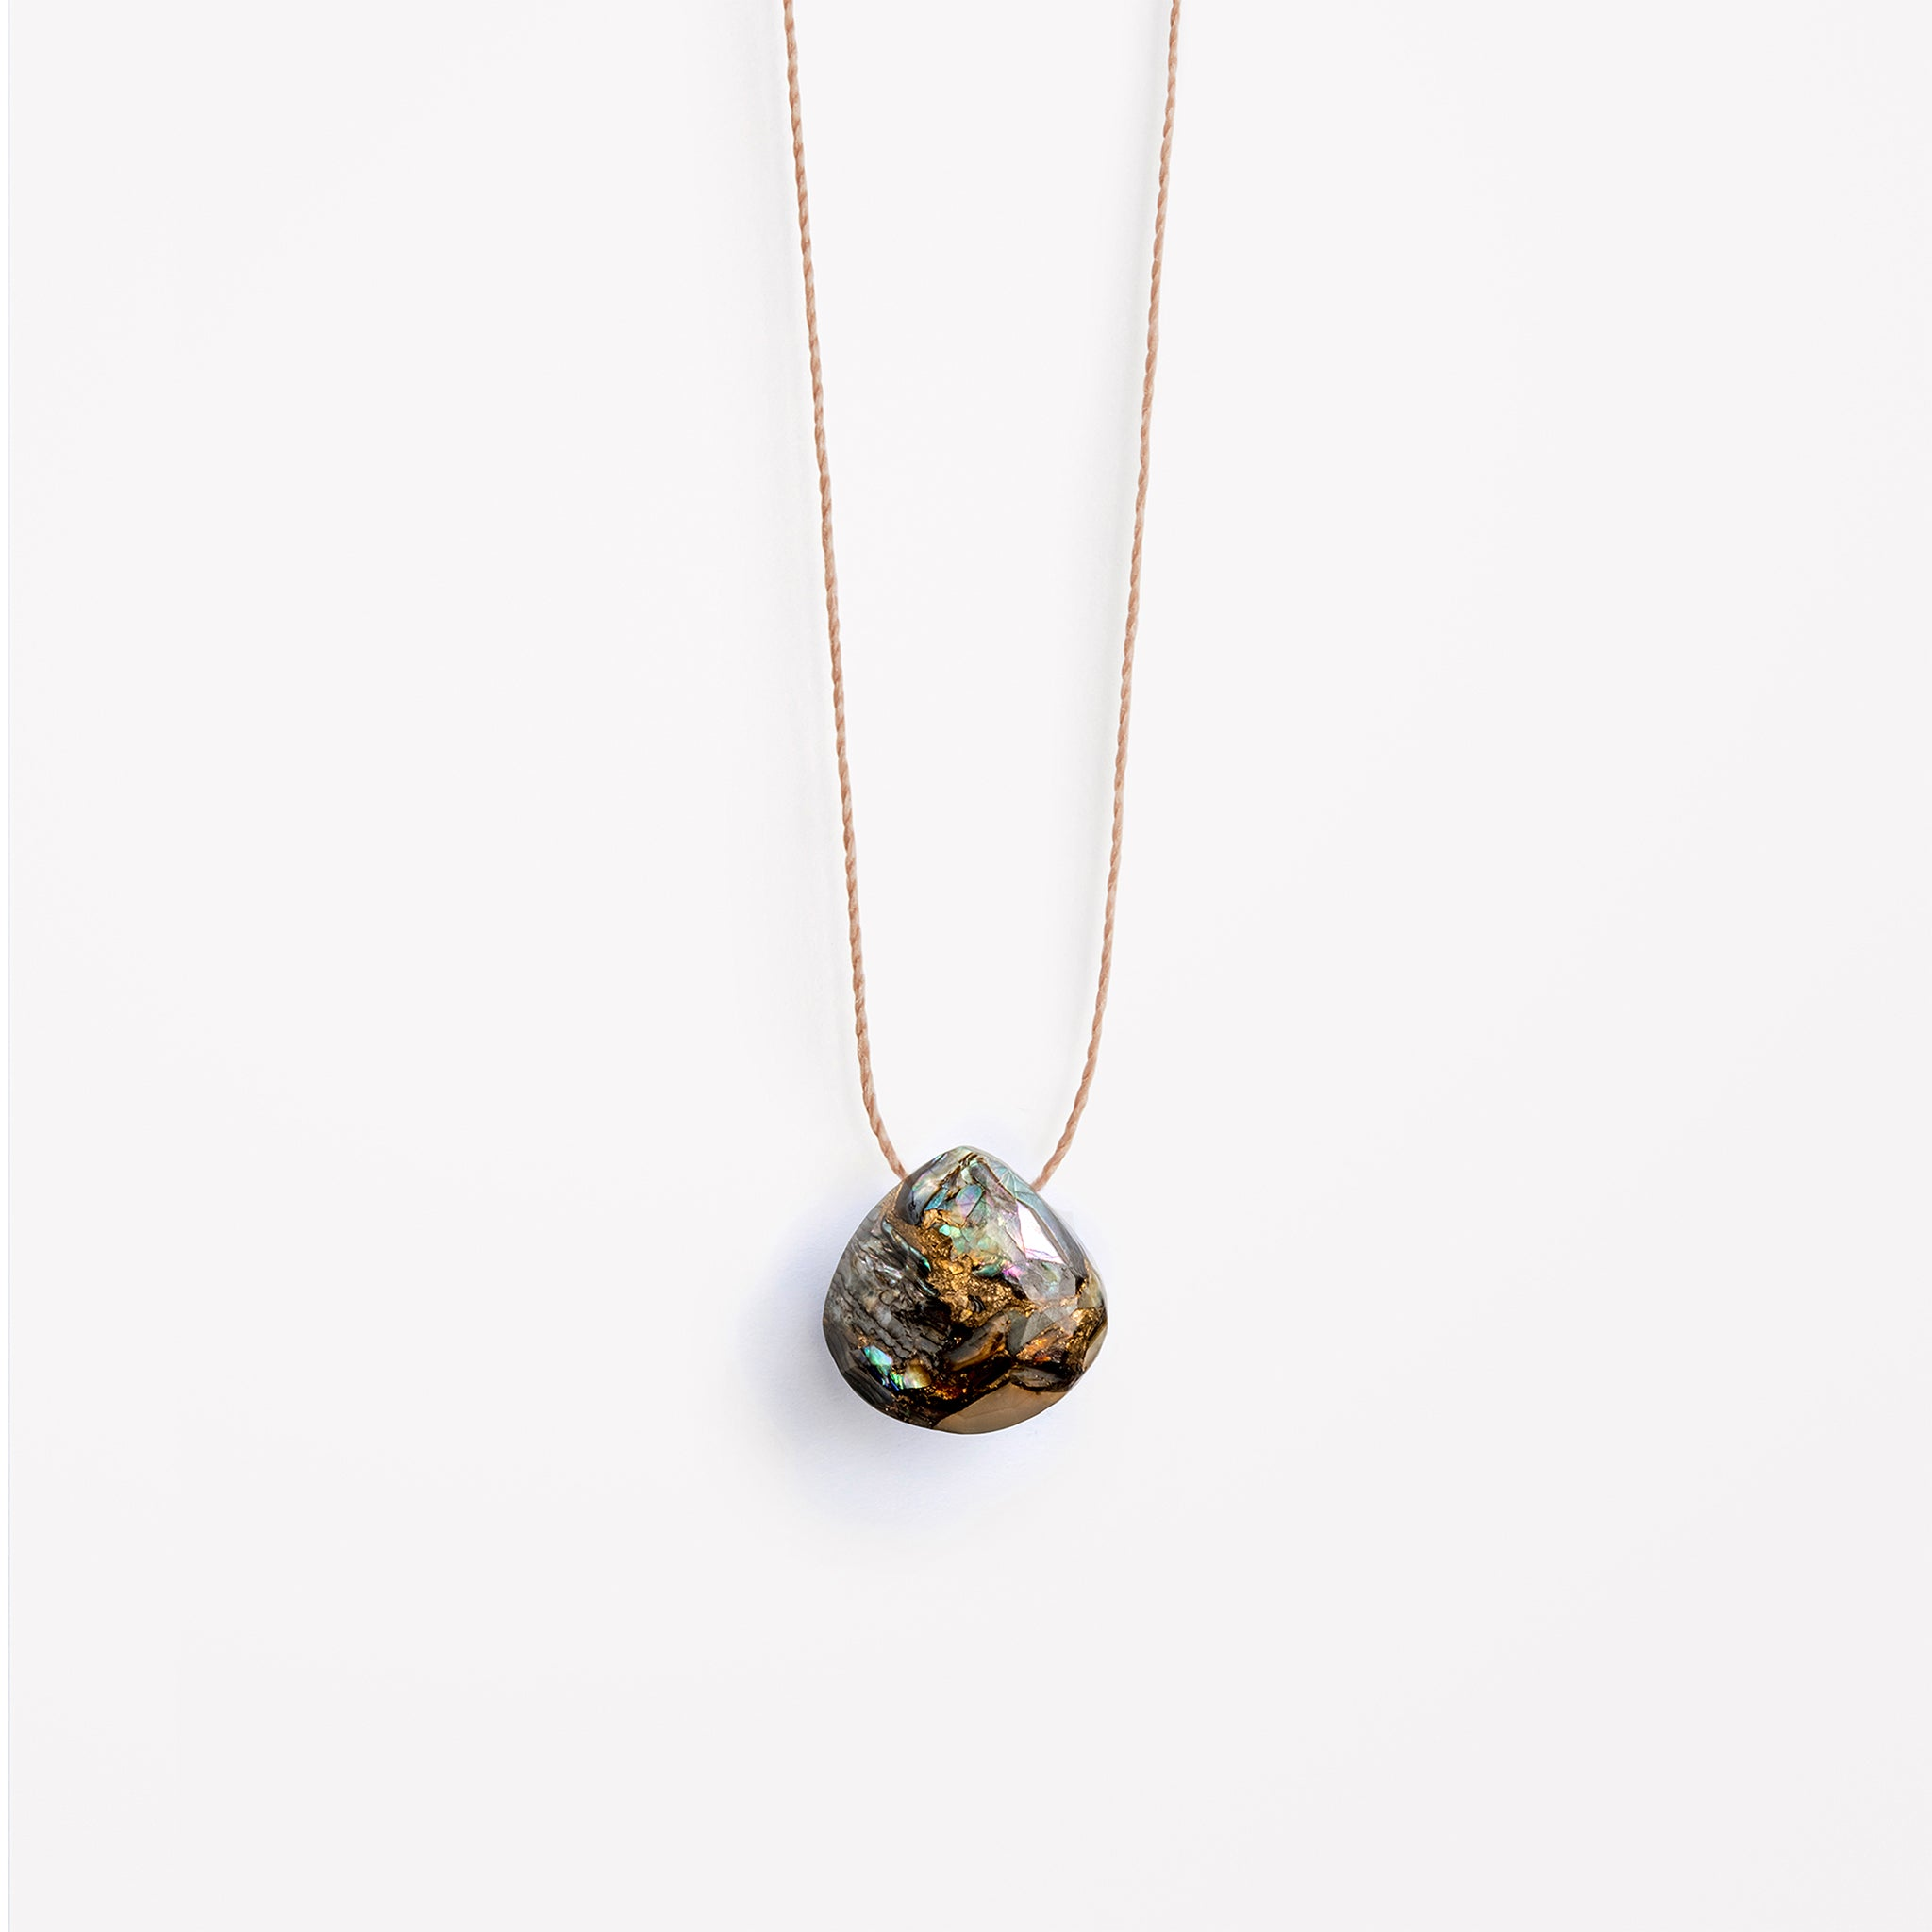 Wanderlust Life paua shell fine cord necklace. Available in 17